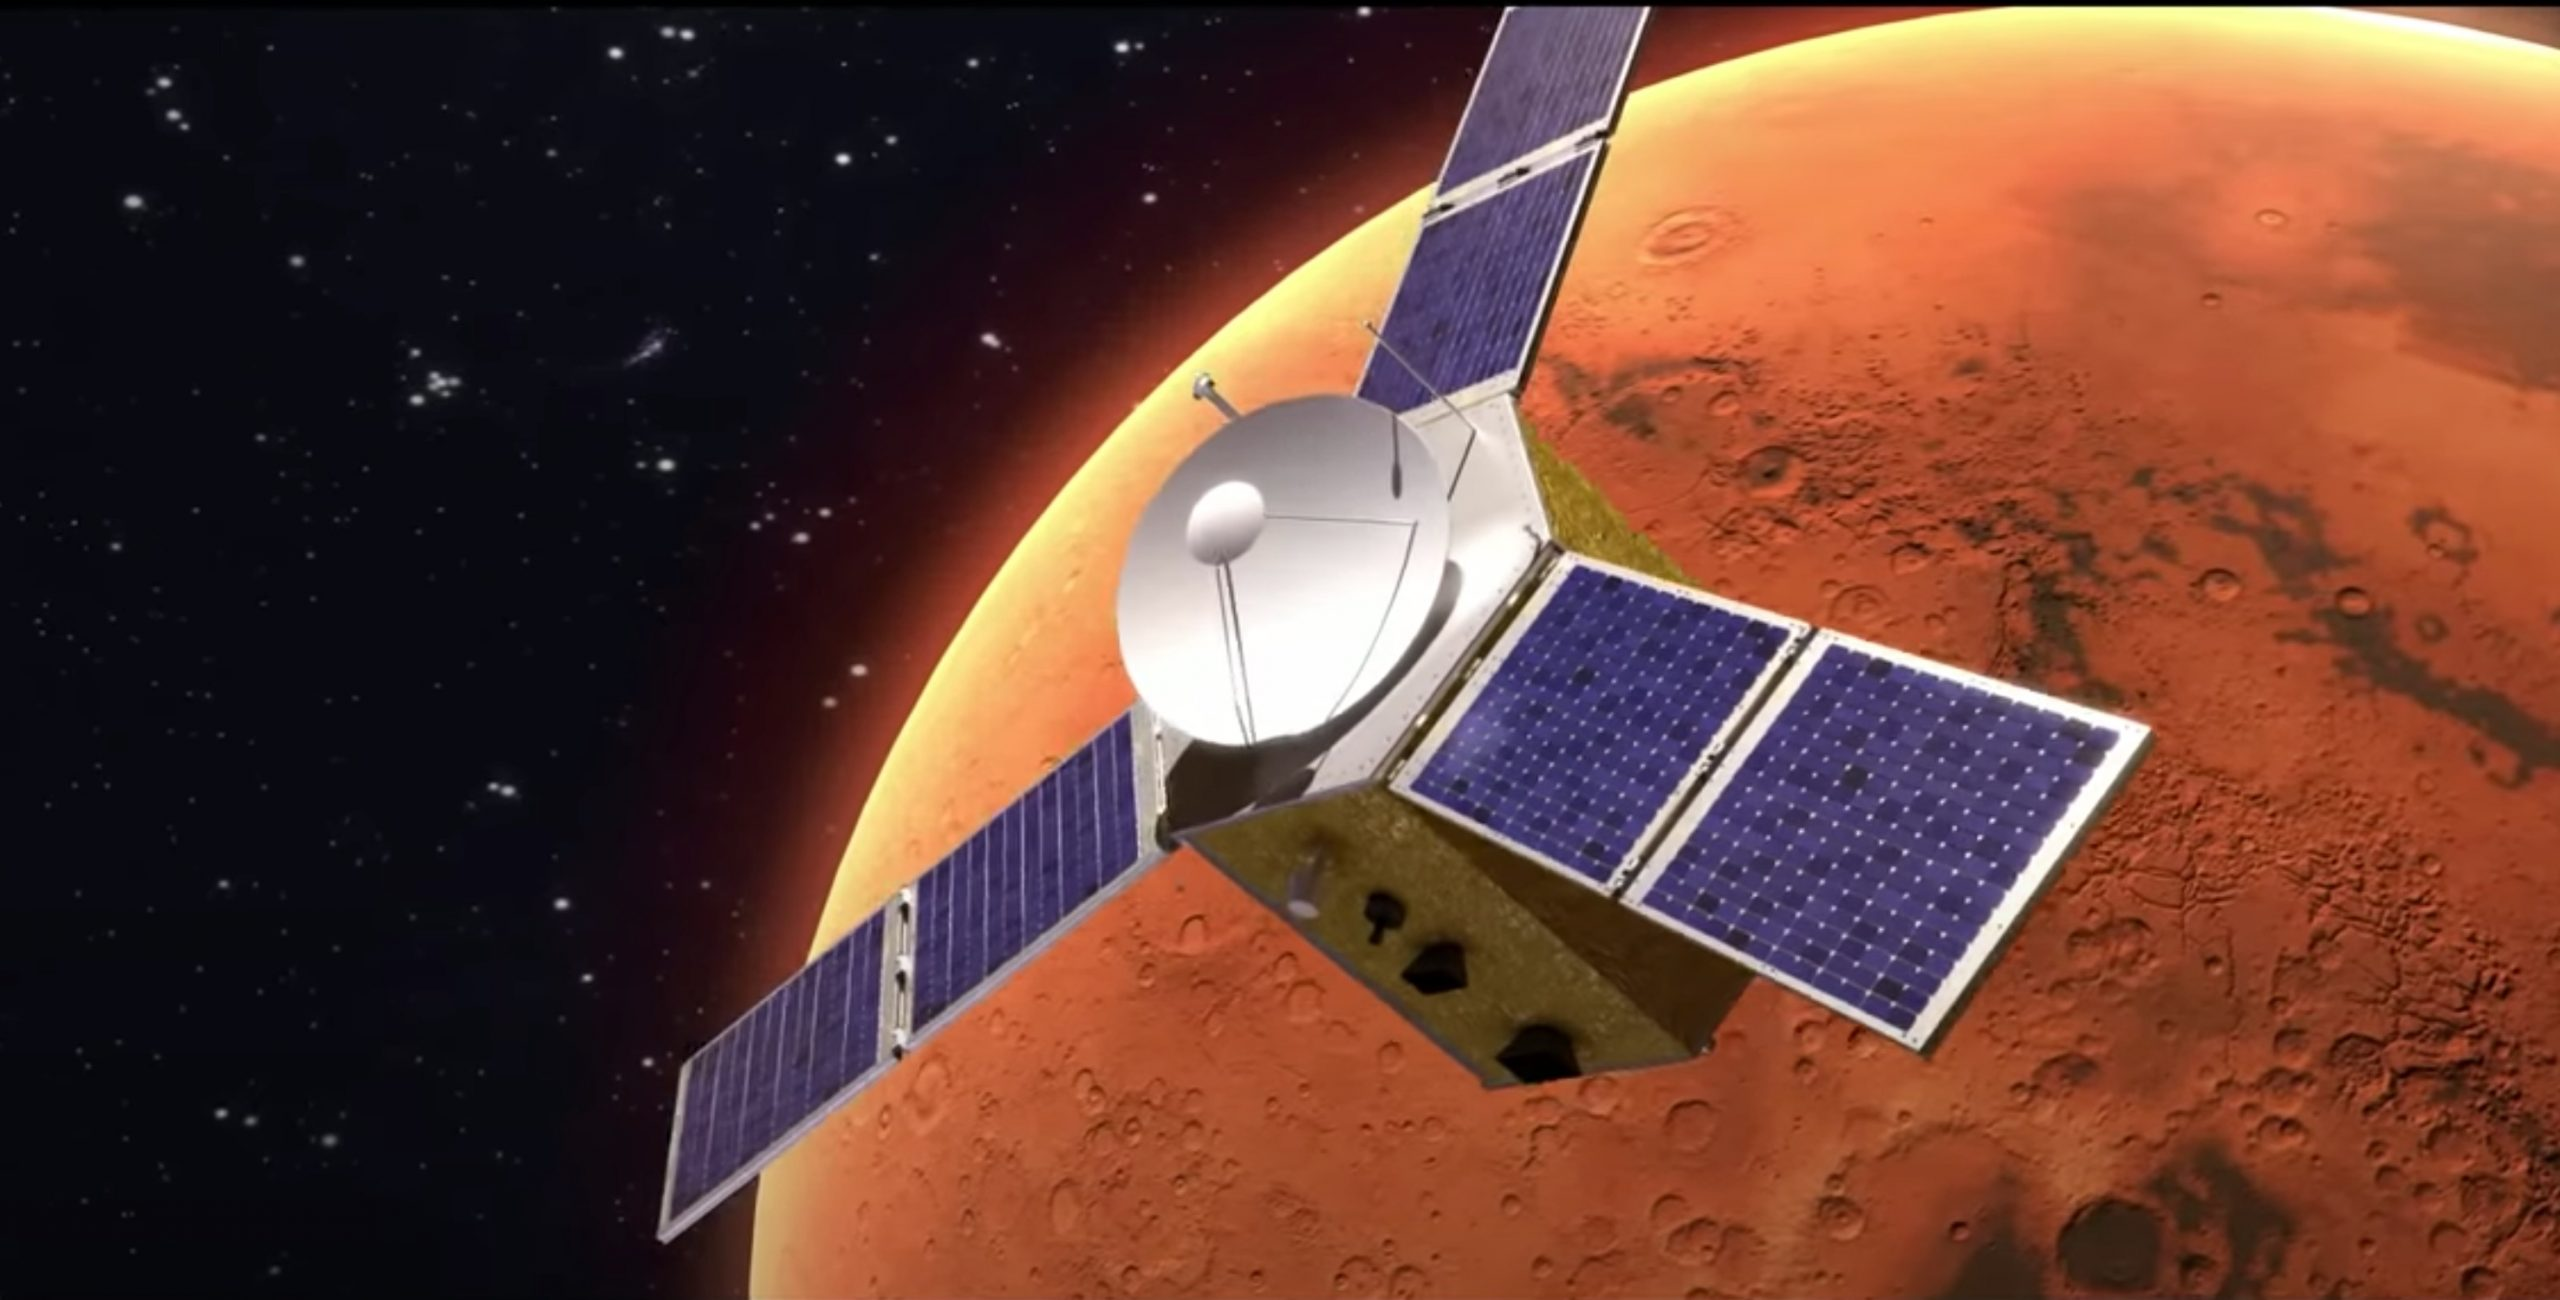 an illustration of a satellite with three solar panelled wings in orbit above mars